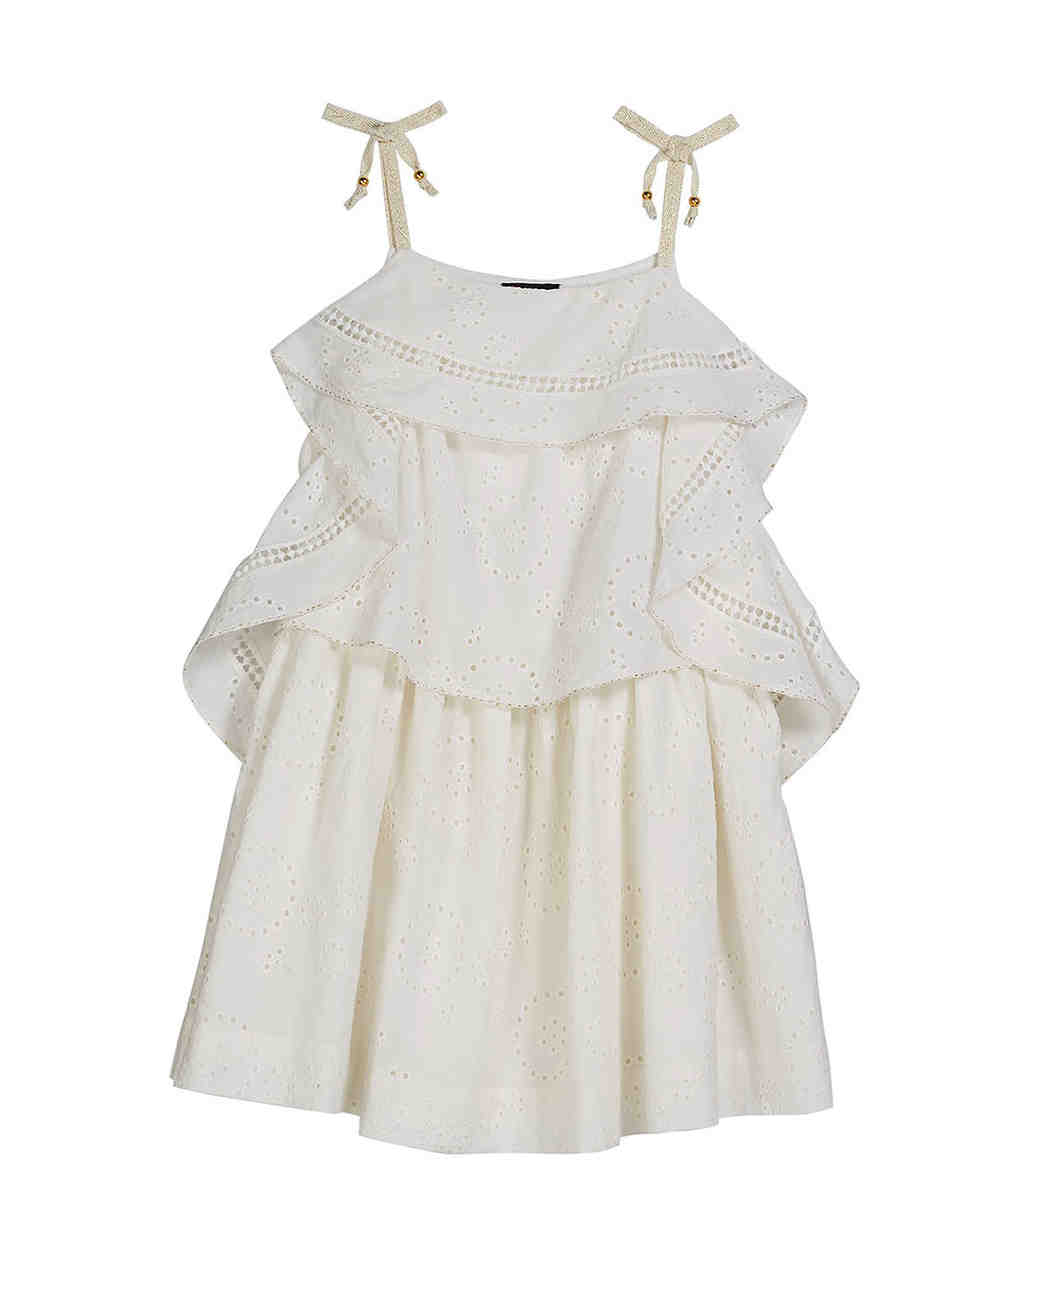 summer flower girl outfit white frills dress